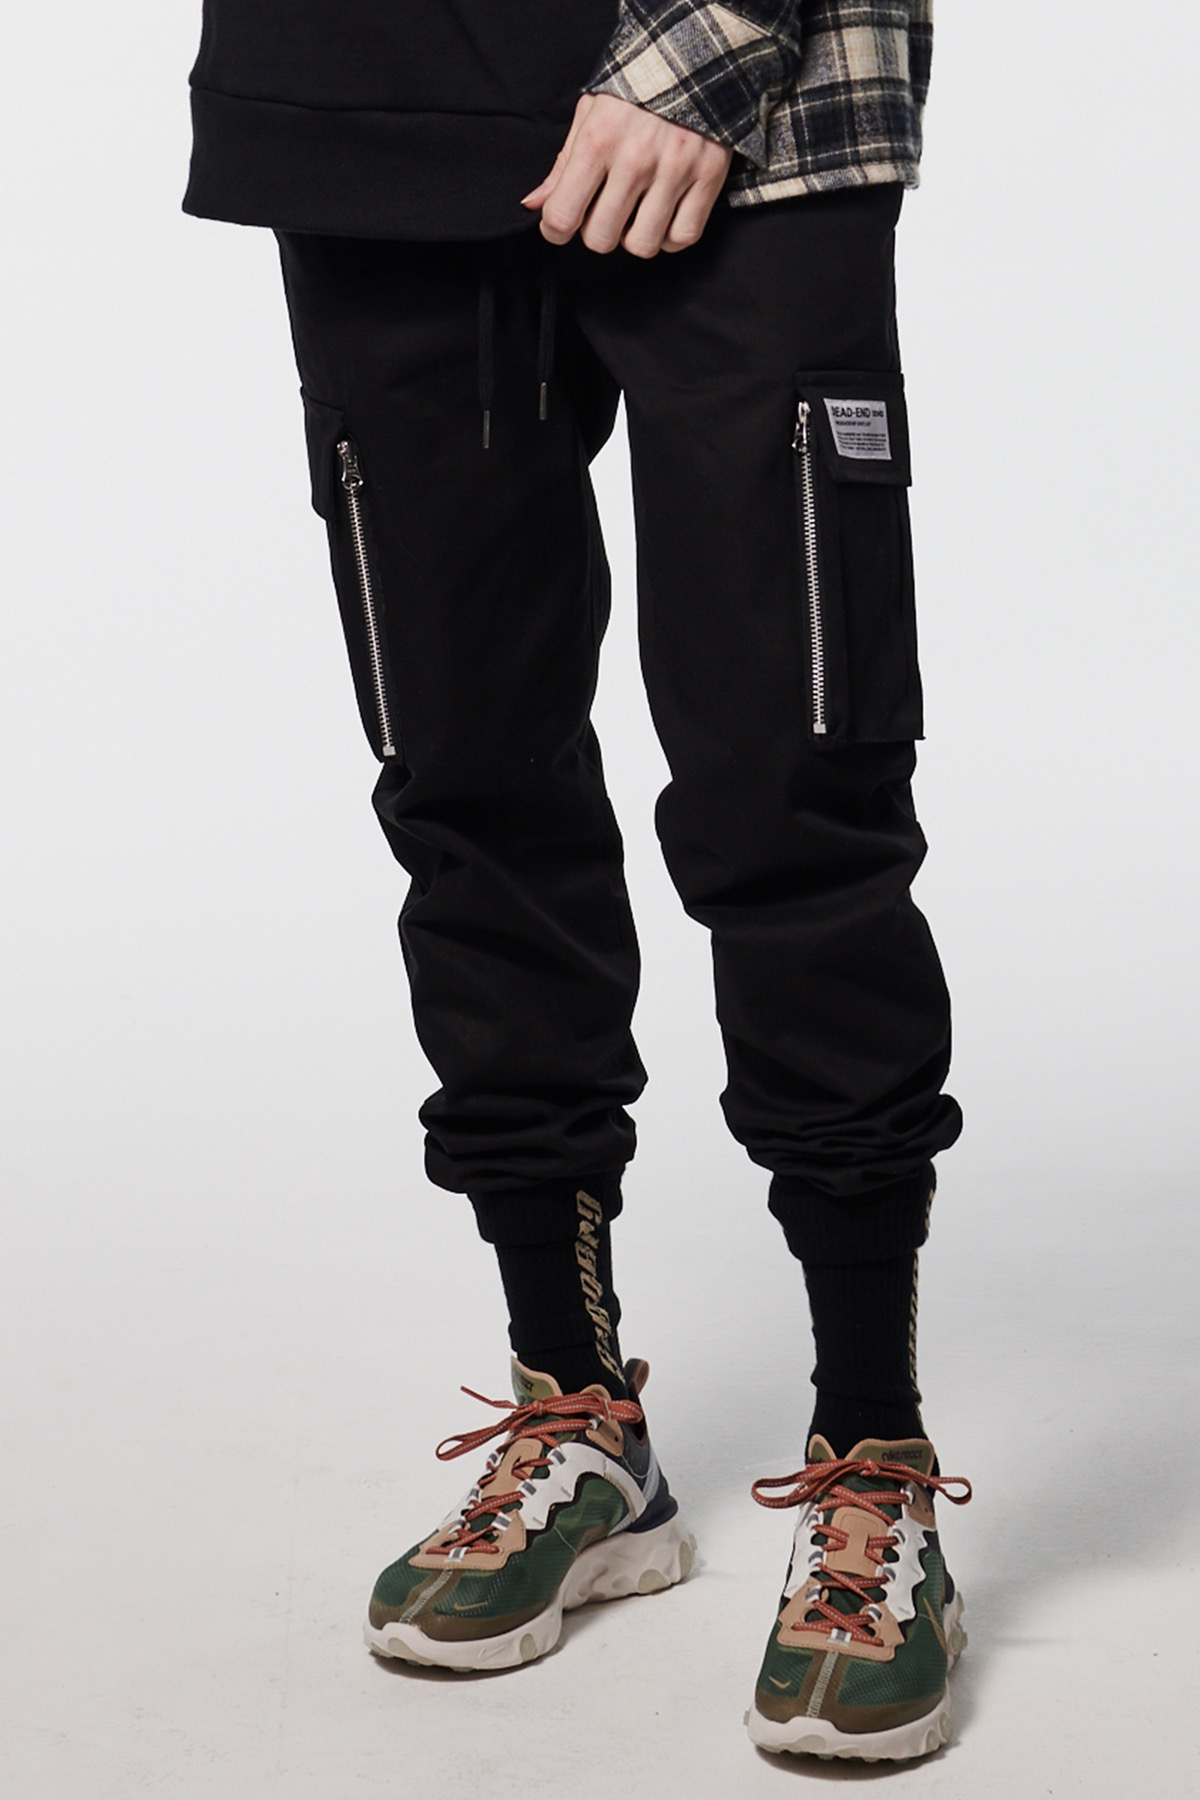 BLACK CARGO ZIPPER JOG PANTS